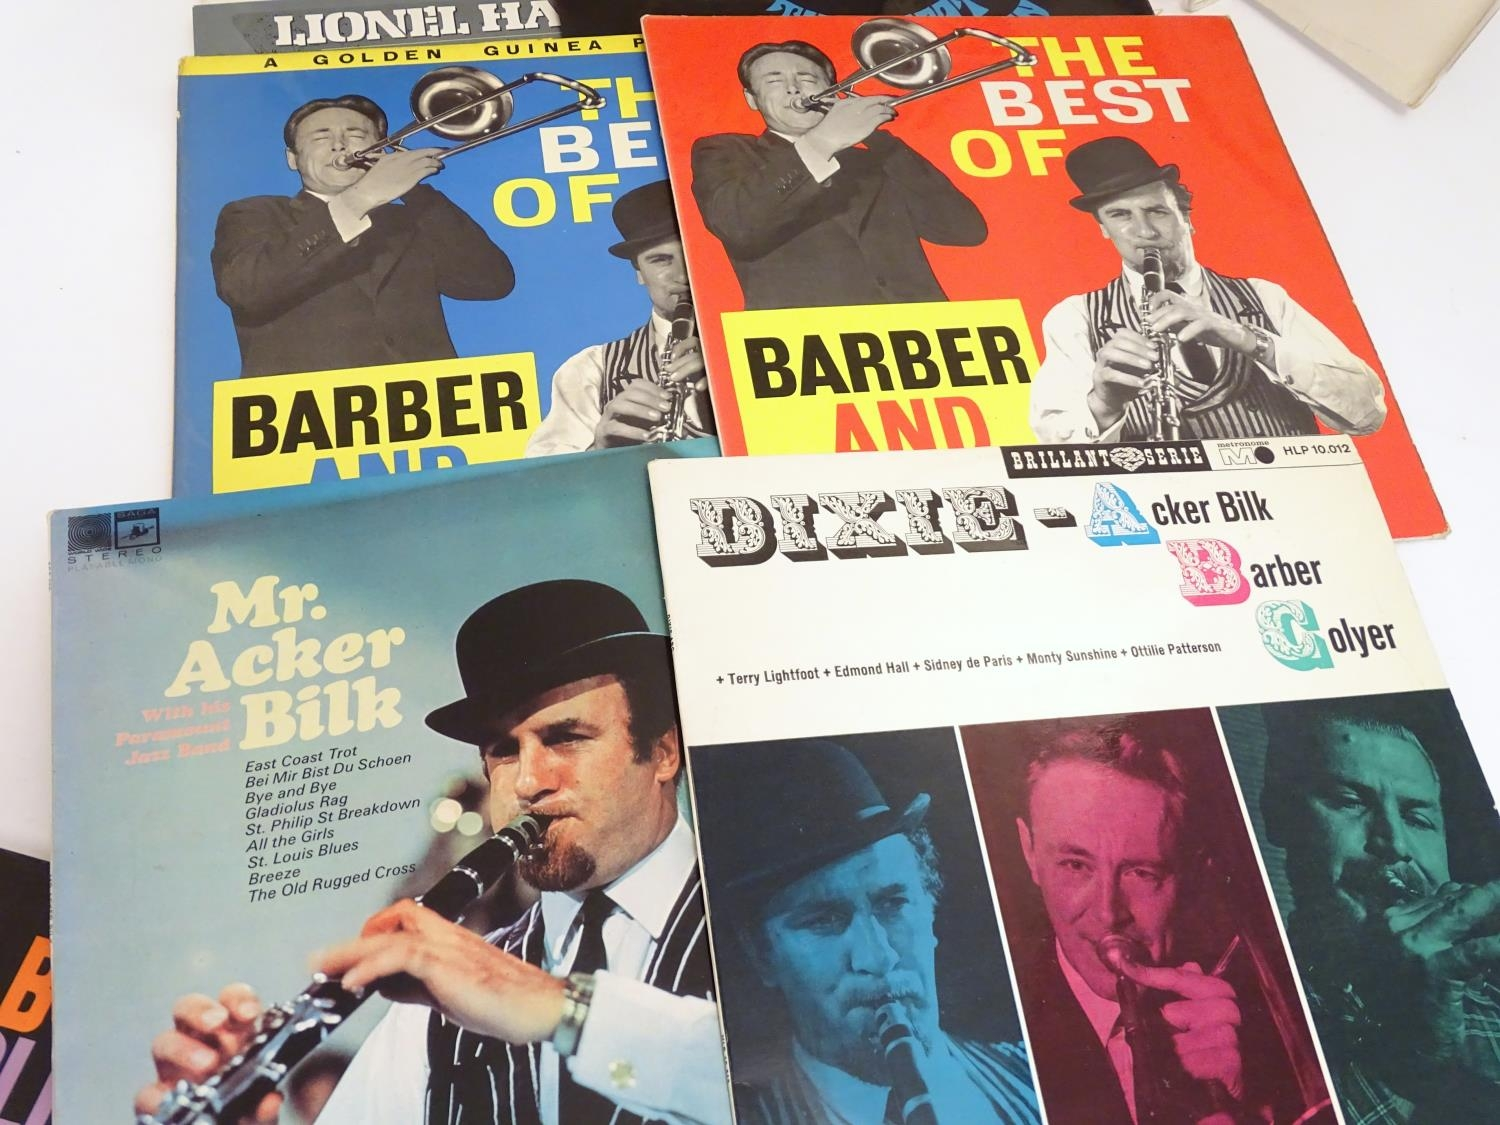 A collection of 20thC 33 rpm Vinyl records / LPs, - Jazz, comprising: The Eddie Condon Floor Show 2, - Image 11 of 19